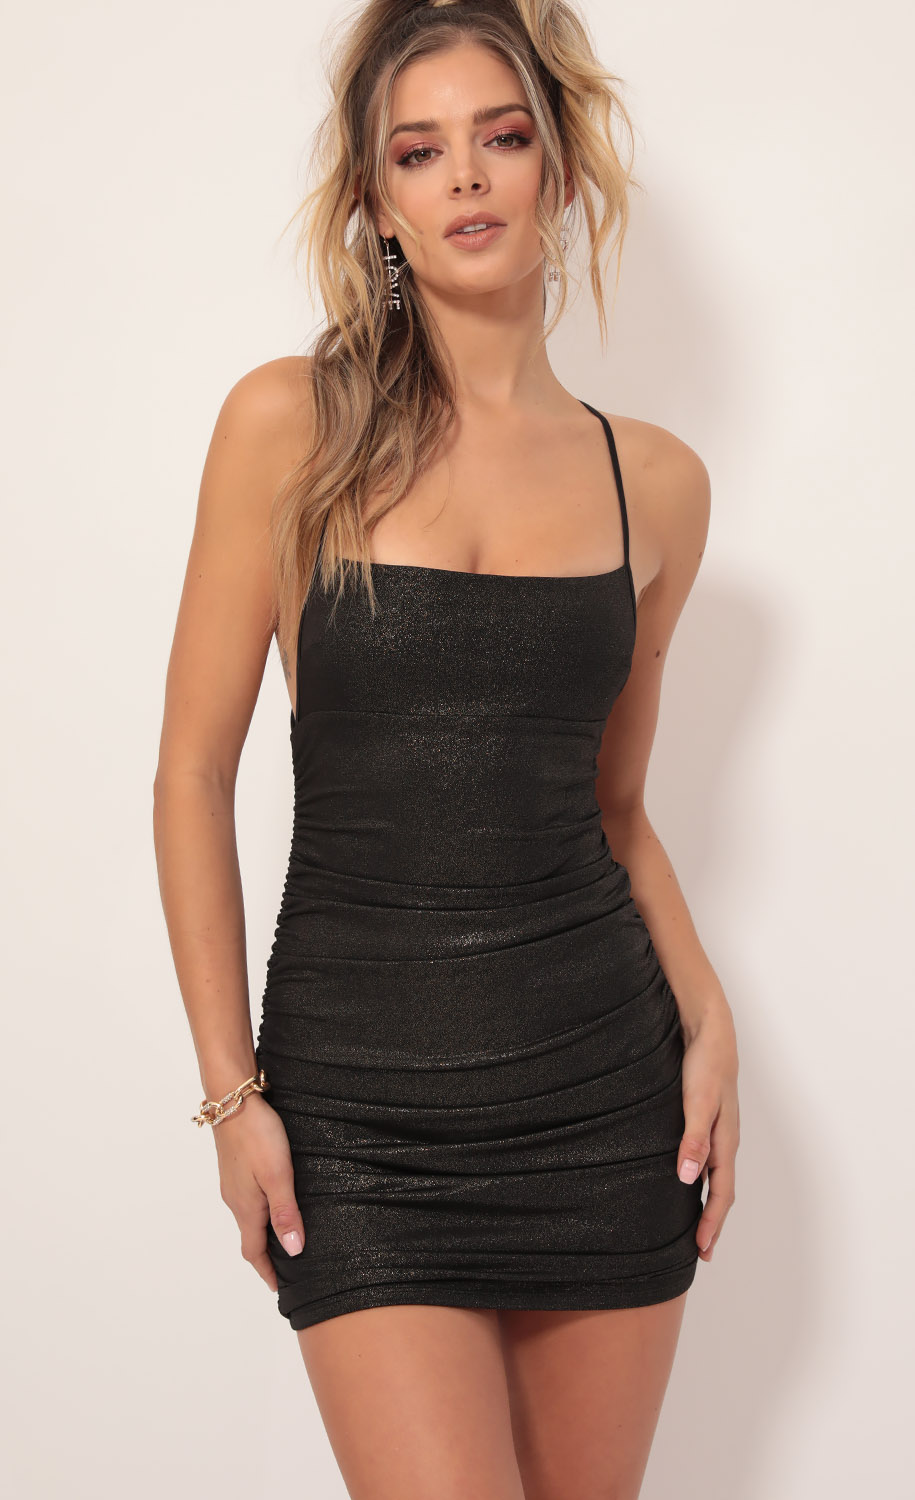 Rhythm Cross Back Shimmer Dress in Black Gold